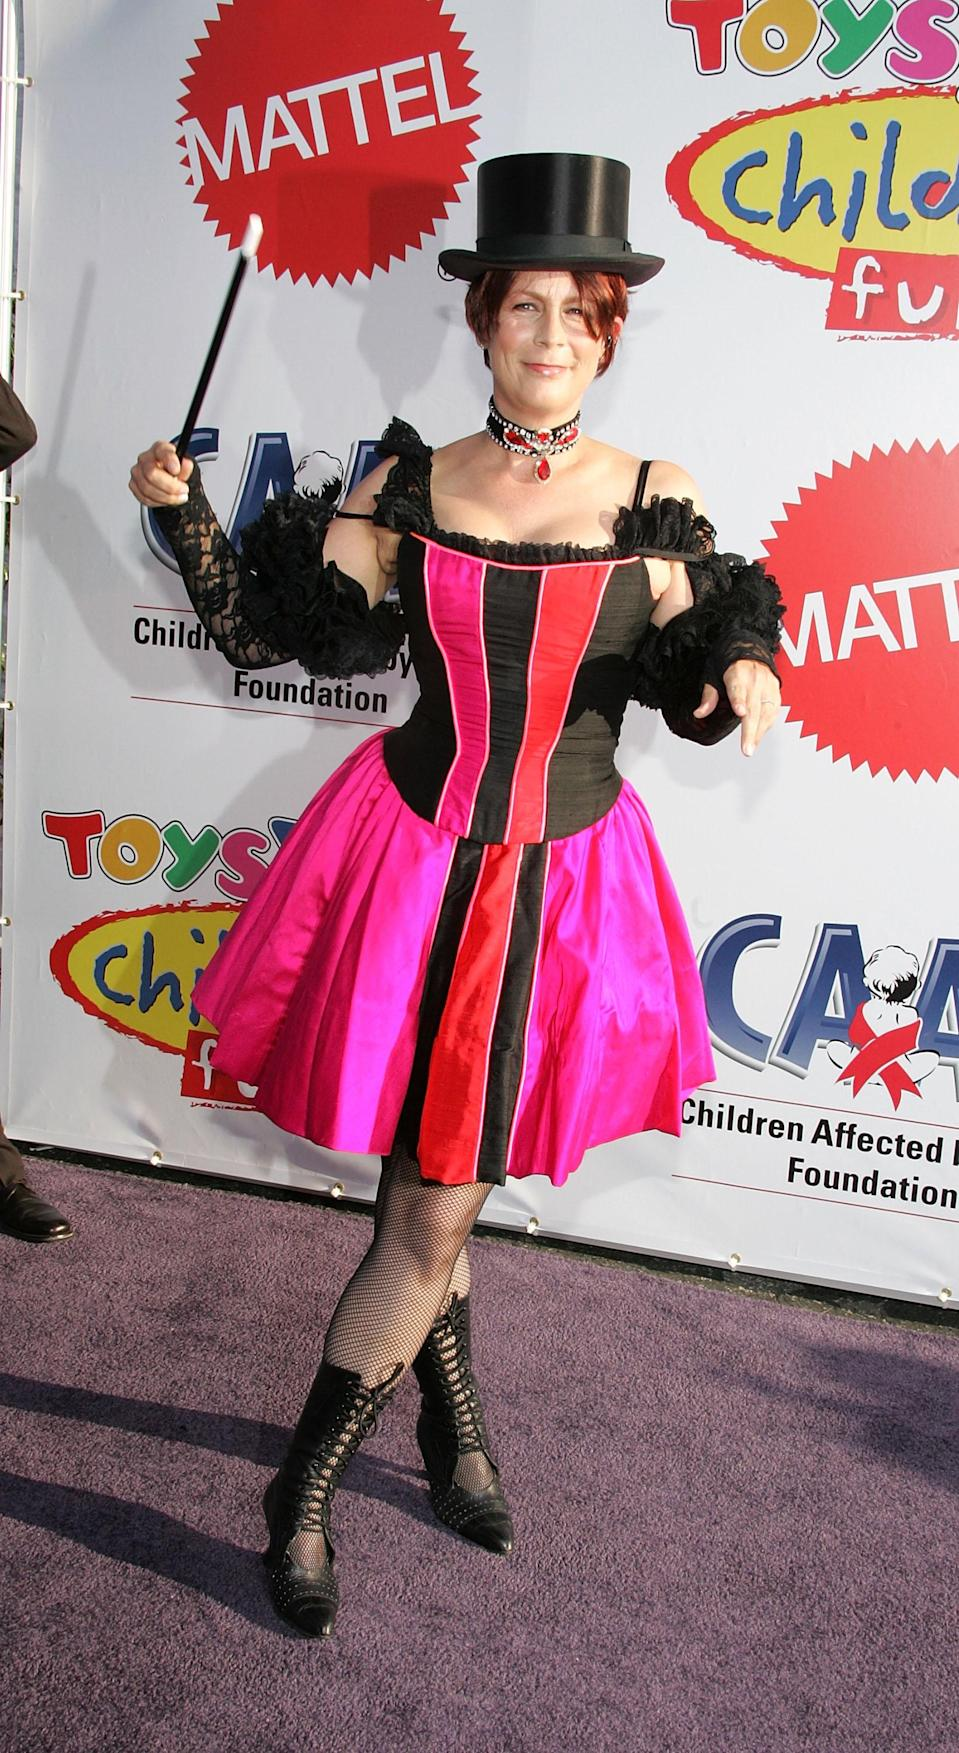 <p>Jamie Lee Curtis attends the 12th Annual Dream Halloween Fundraiser held at Santa Monica Airport October 29, 2005 in Santa Monica, California. (Photo by Frazer Harrison/Getty Images) </p>